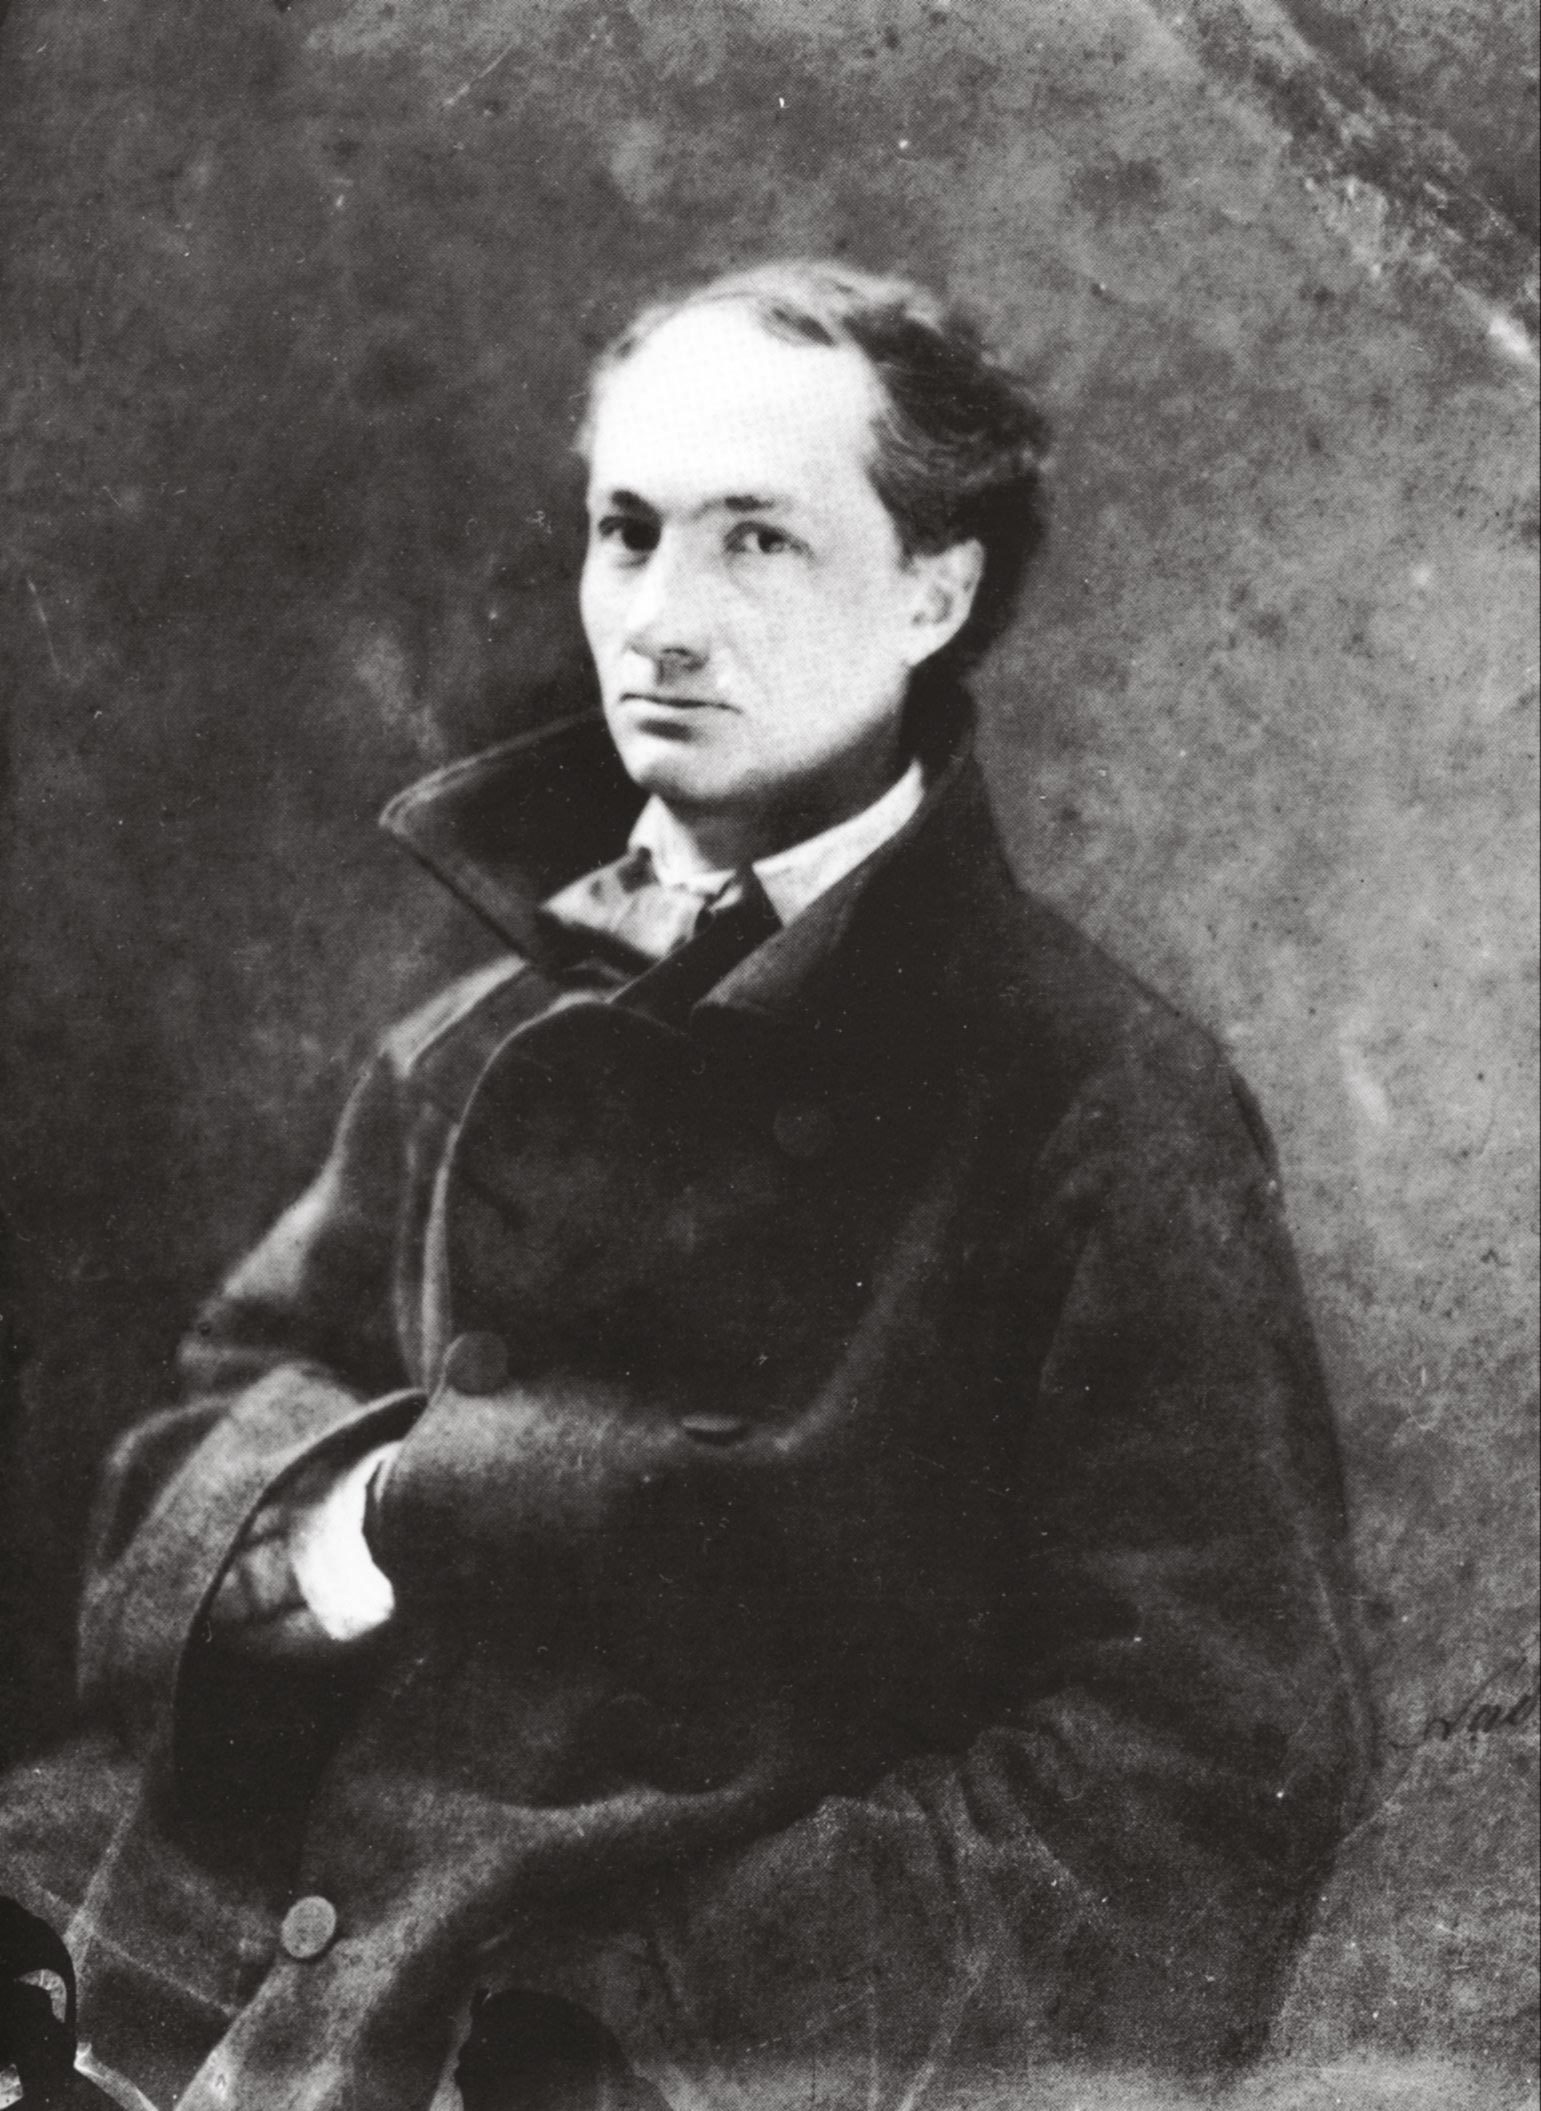 CHARLES